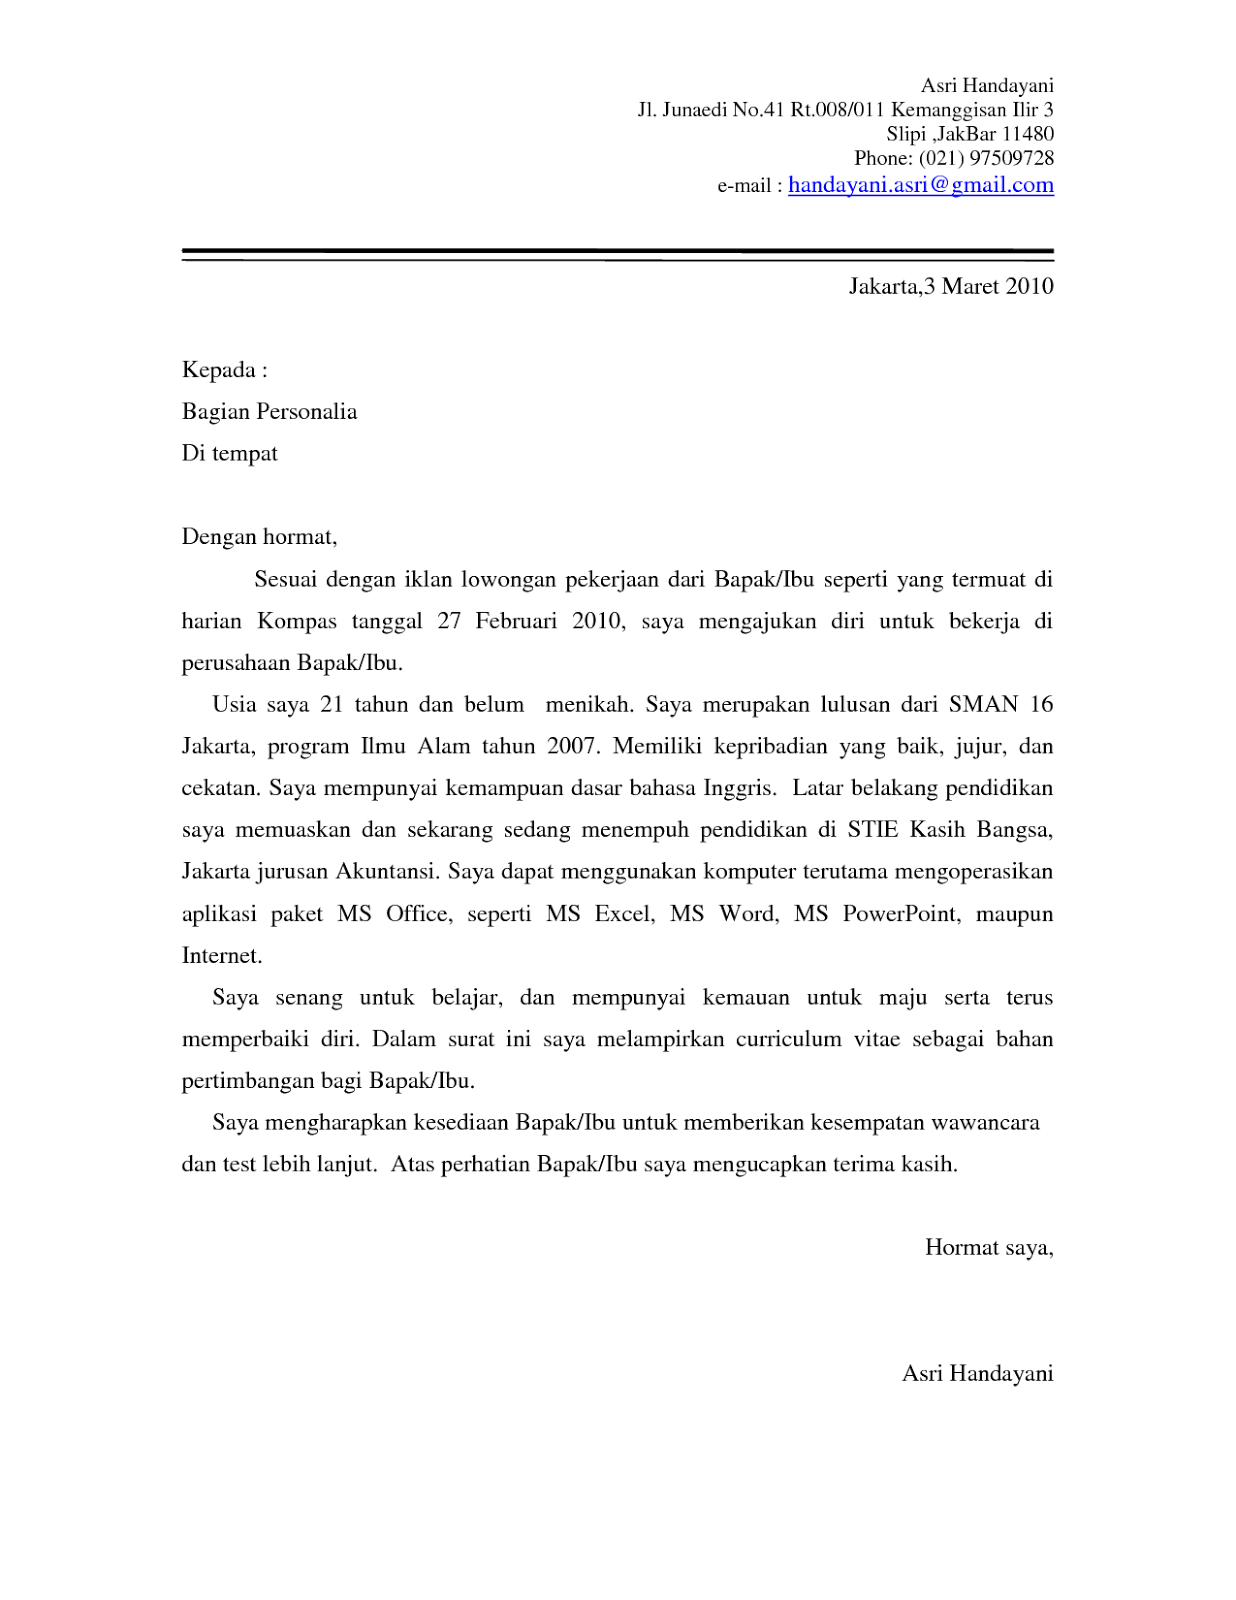 891a652fe8c8736ad504a784cceff6a1 Job Application Letter Bahasa Inggris on cv letter, job application format, resume letter, job interview, part time job letter, job application pattern, job application brochure, job application email, job application template, job persuasive letter, job application resume, resignation letter, cover letter, job application paragraph, curriculum vitae letter, job performance letter, employment letter, job hiring letter, job application form, job petition letter,